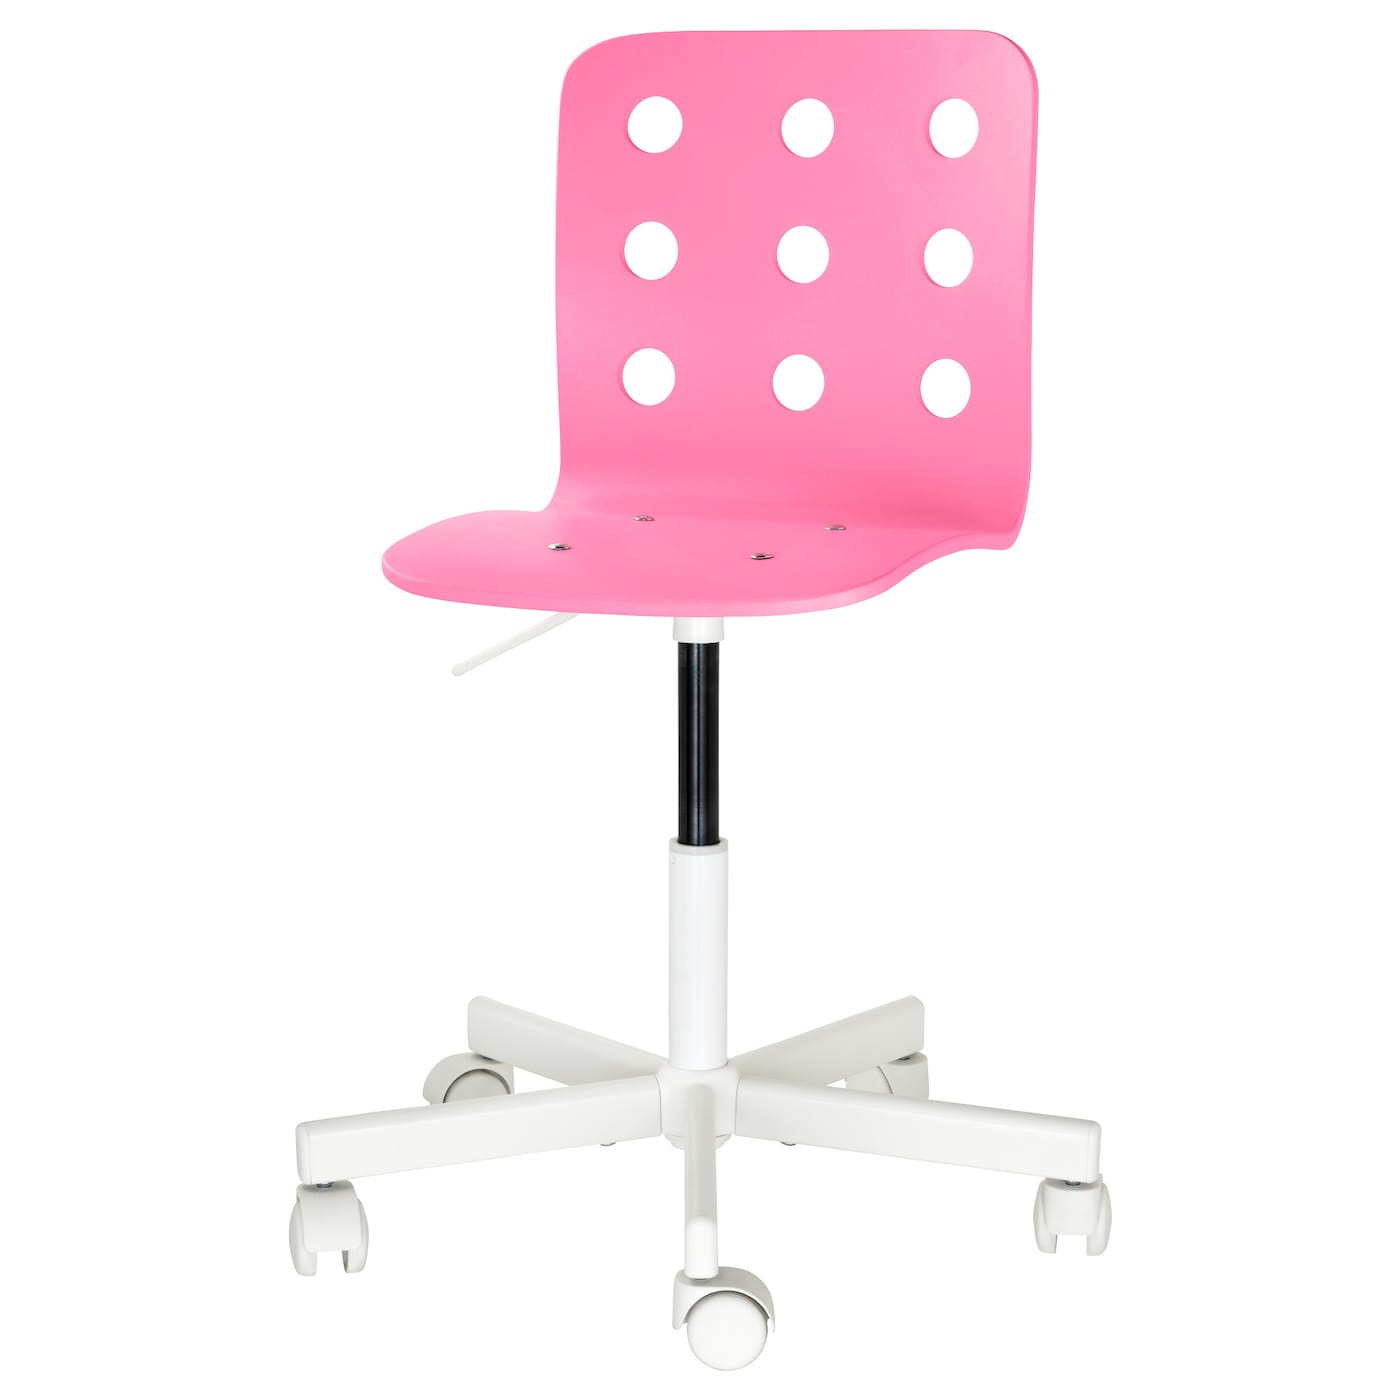 Jules children 39 s desk chair pink white ikea - Ikea childrens desk and chair set ...